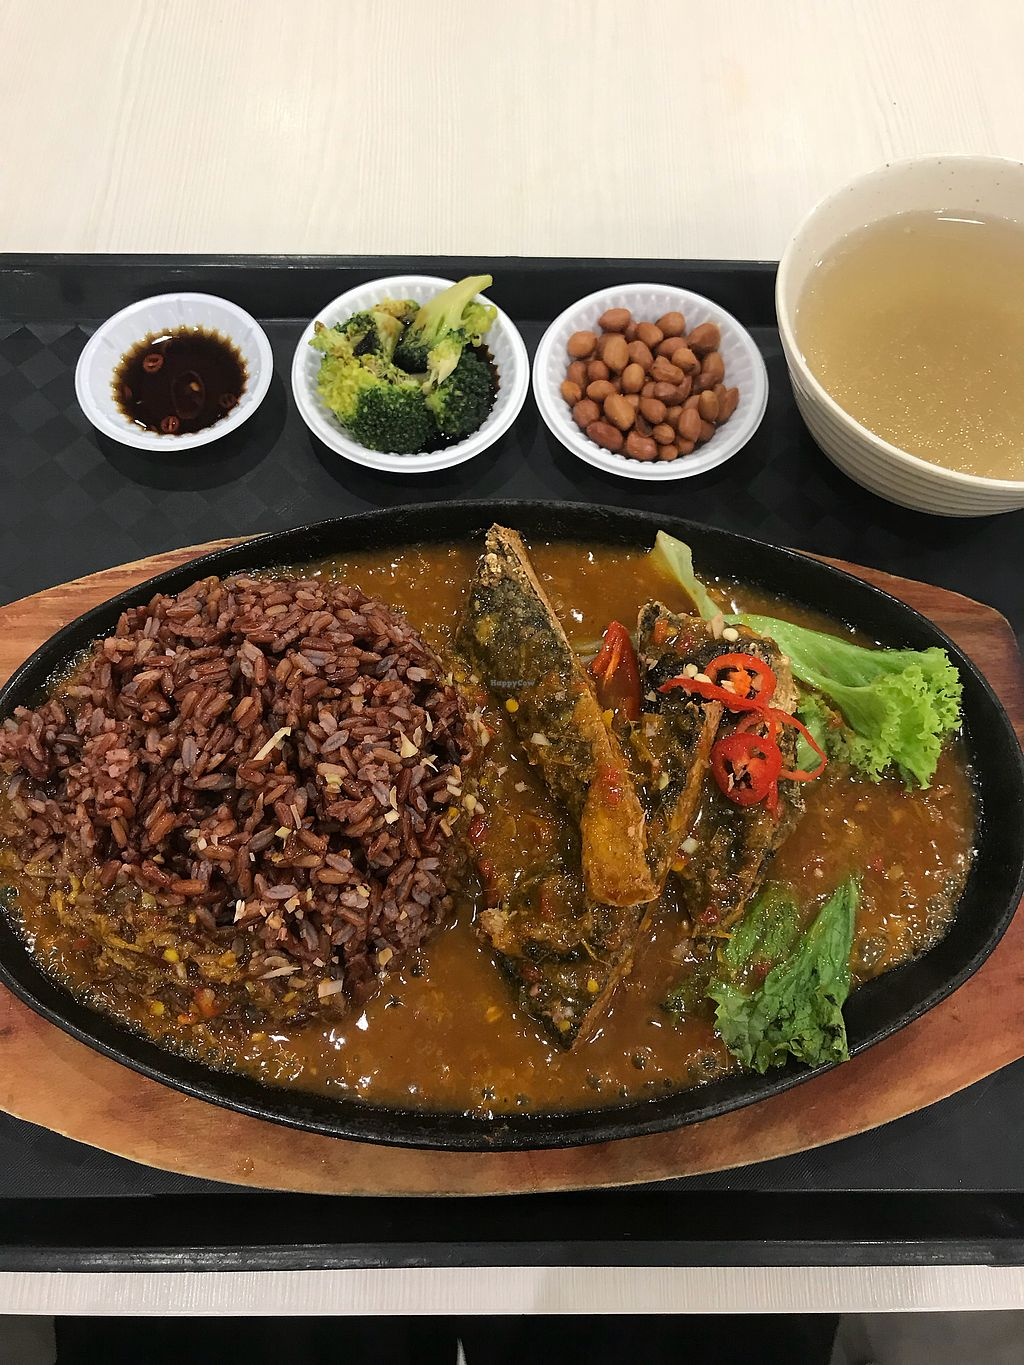 """Photo of T-vege Food Stall  by <a href=""""/members/profile/Peiying"""">Peiying</a> <br/>Samba Fish Rice Set <br/> March 23, 2018  - <a href='/contact/abuse/image/101052/374758'>Report</a>"""